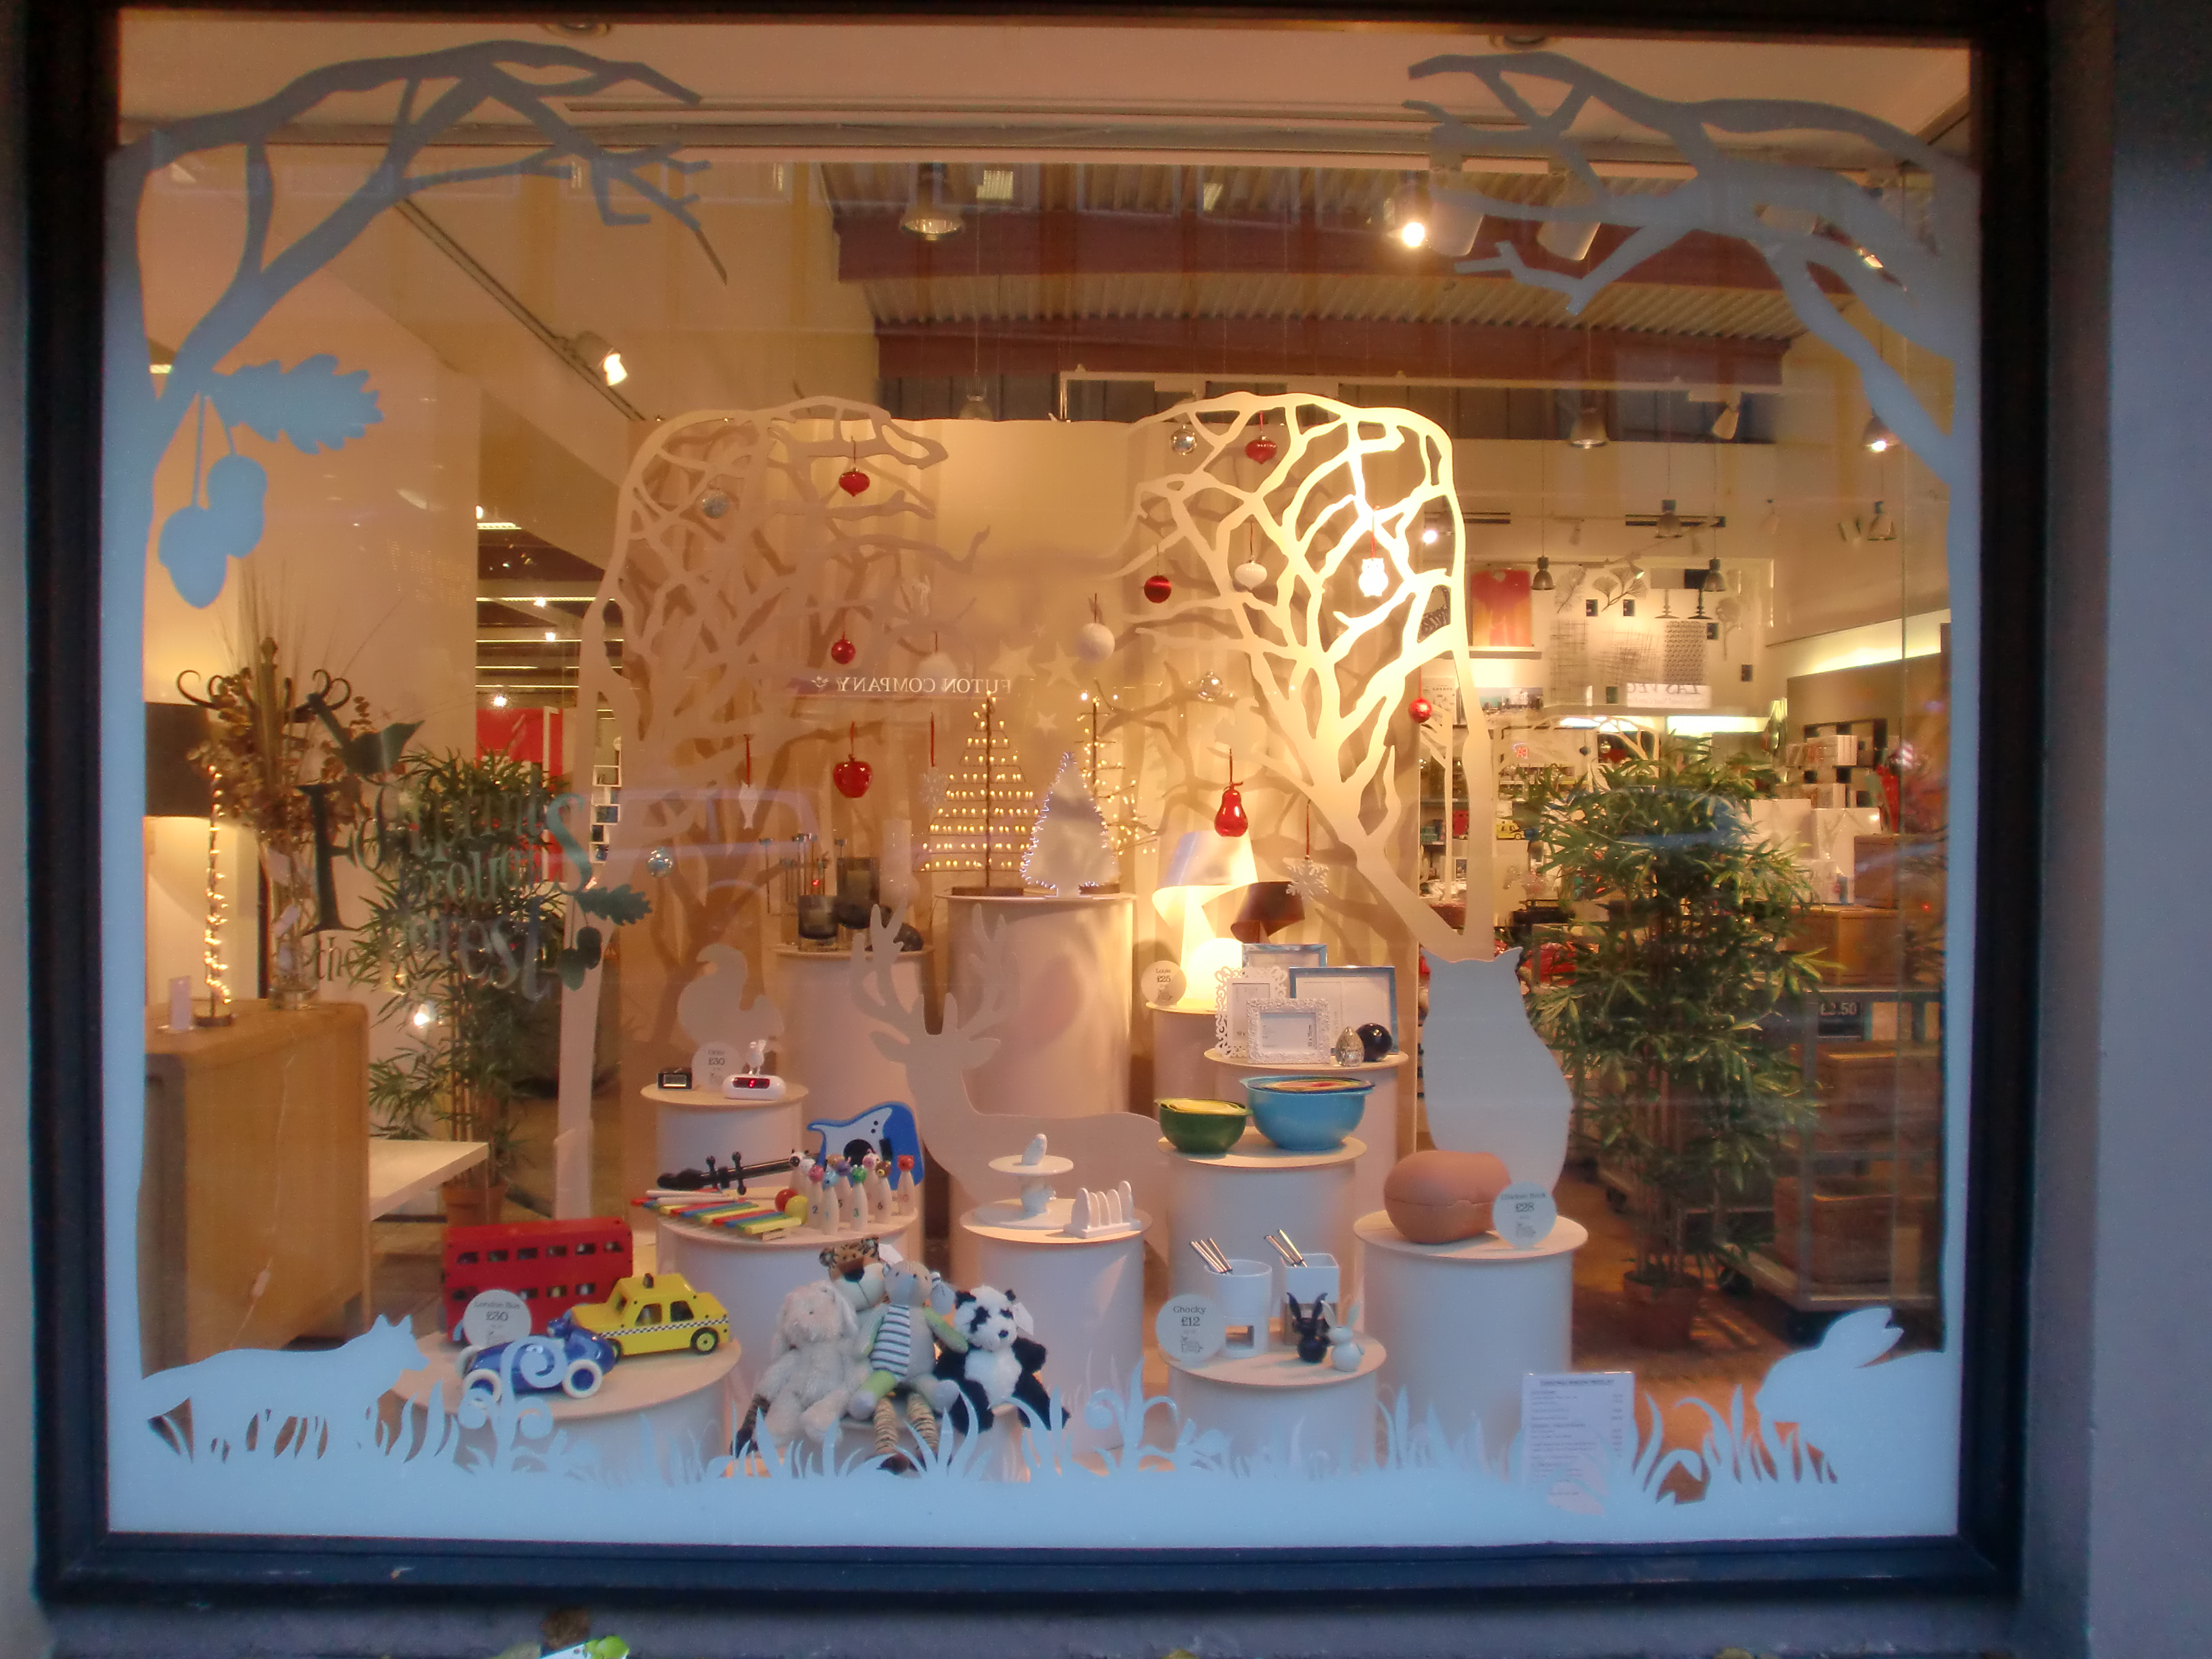 Vicky wren a visual merchandiser for habitat i do windows - Visual merchandising head office jobs ...